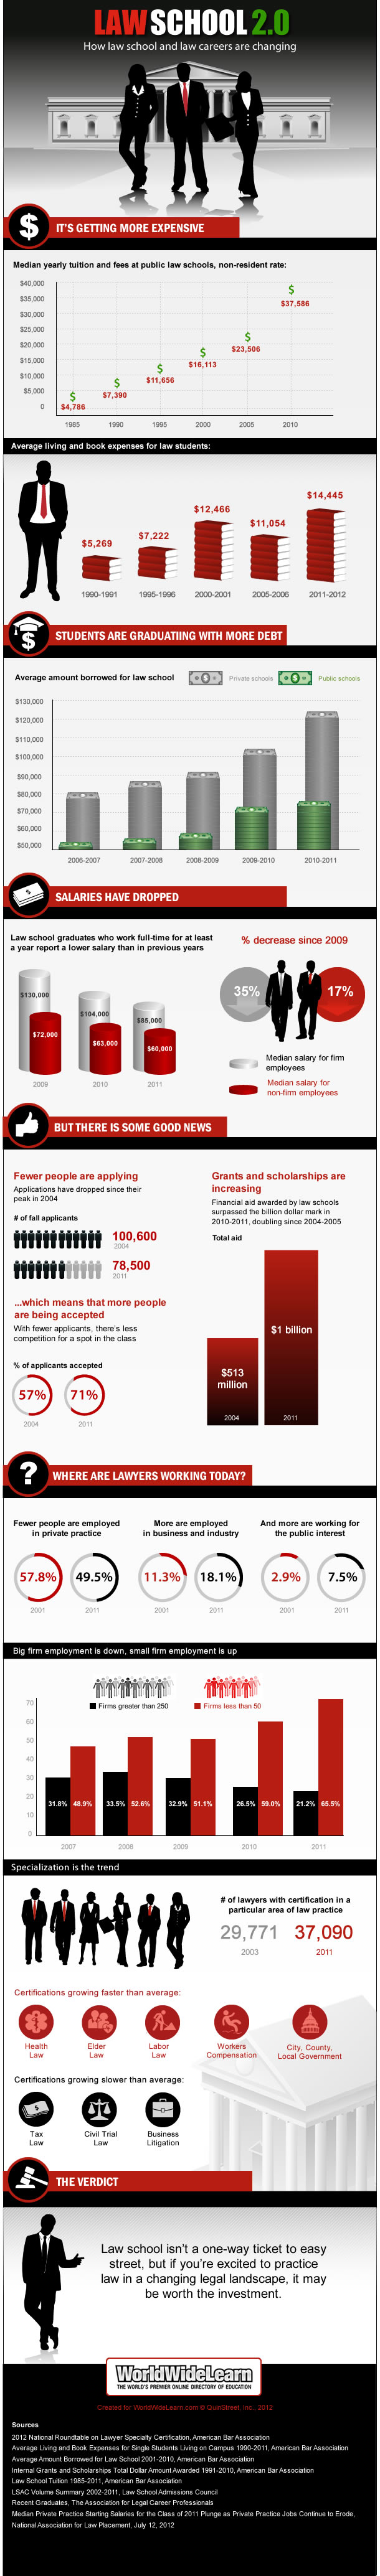 Law School Facts and Statistics